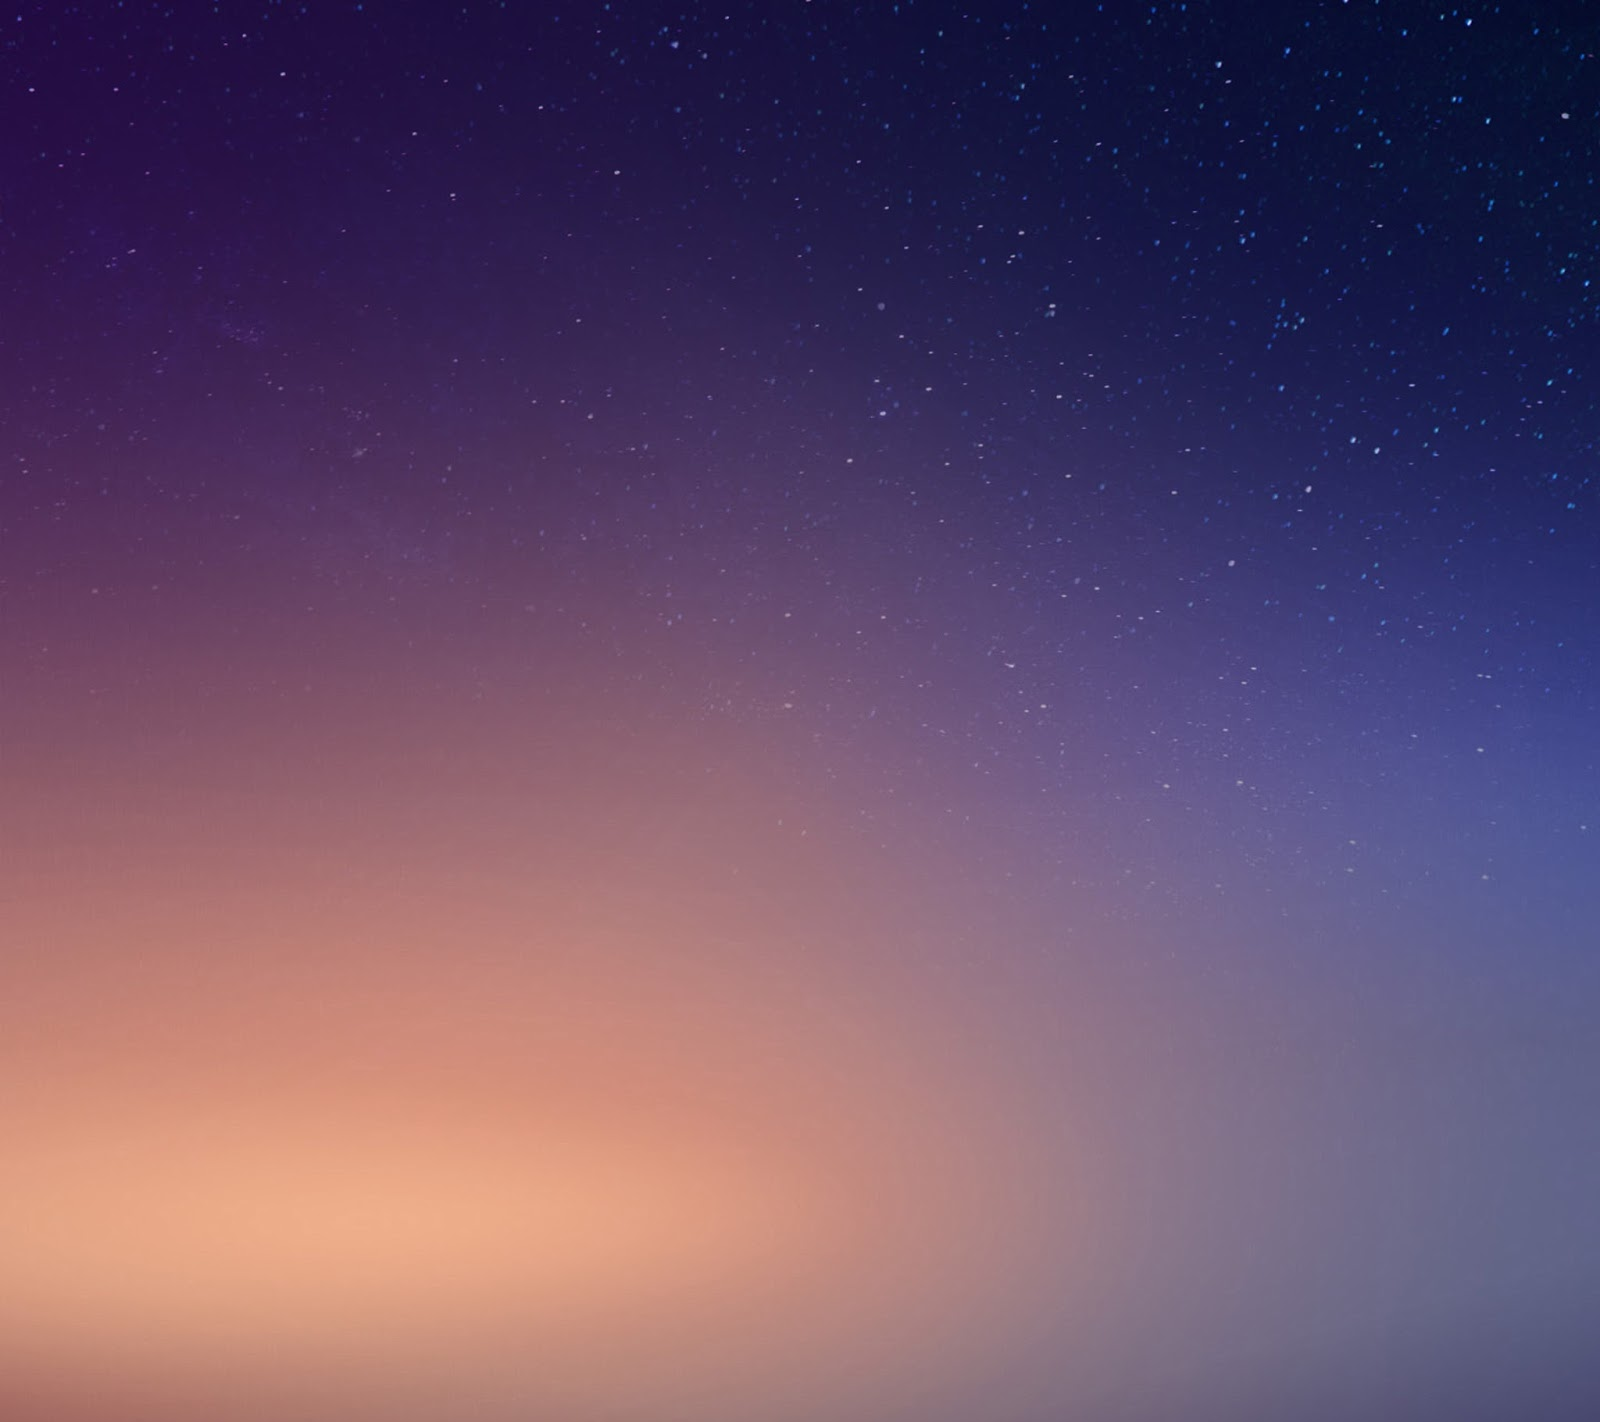 wallpaper hd xiaomi redmi 1s